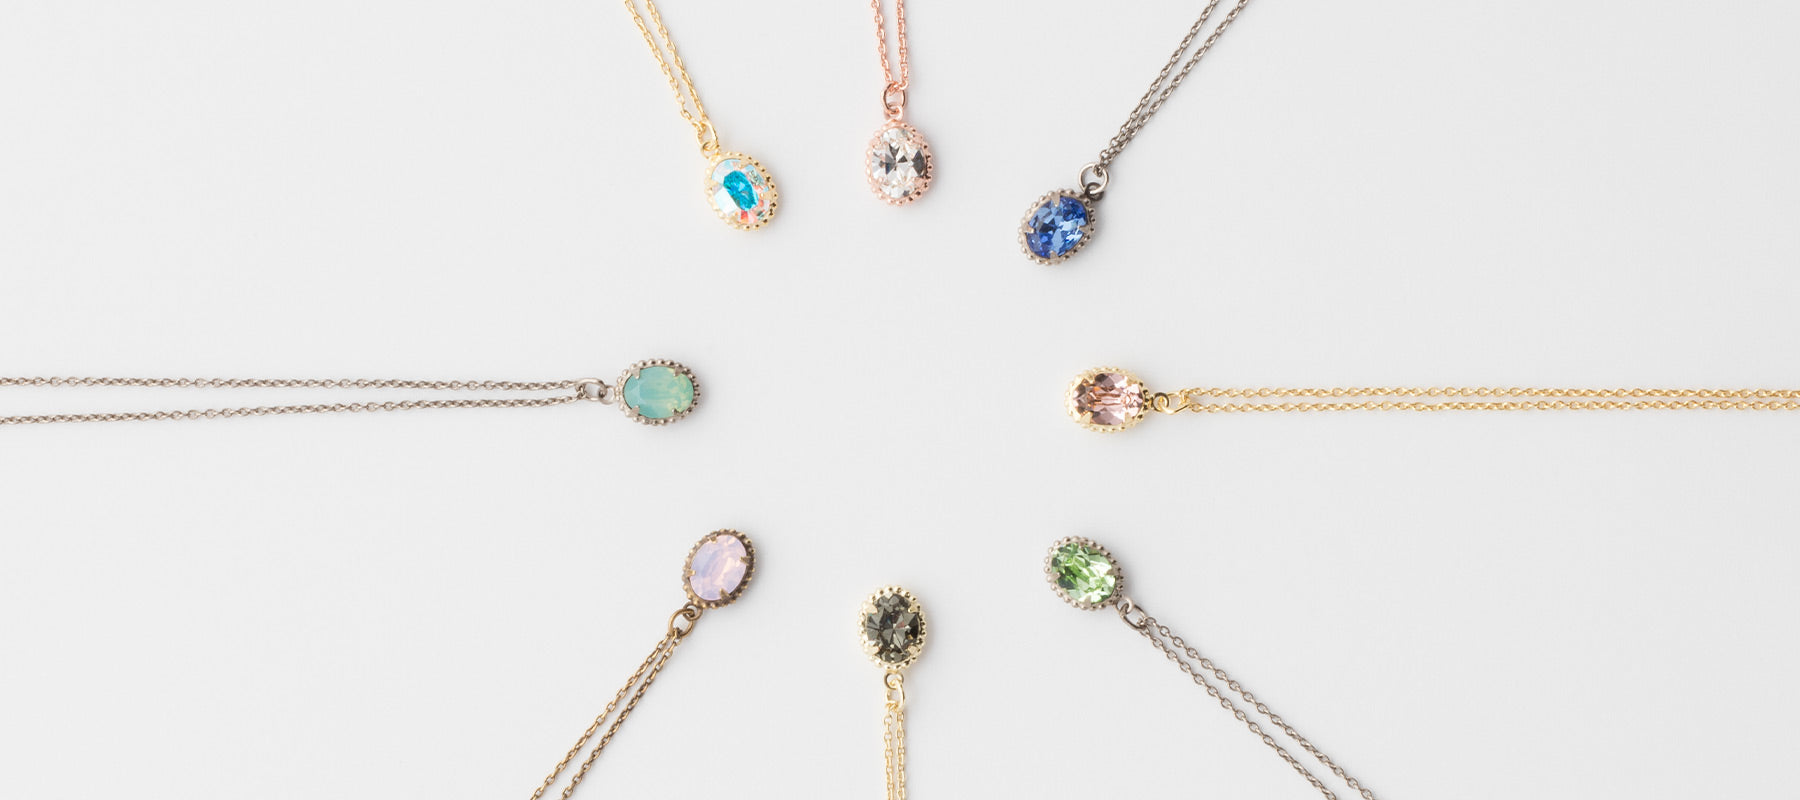 Pendant Necklaces